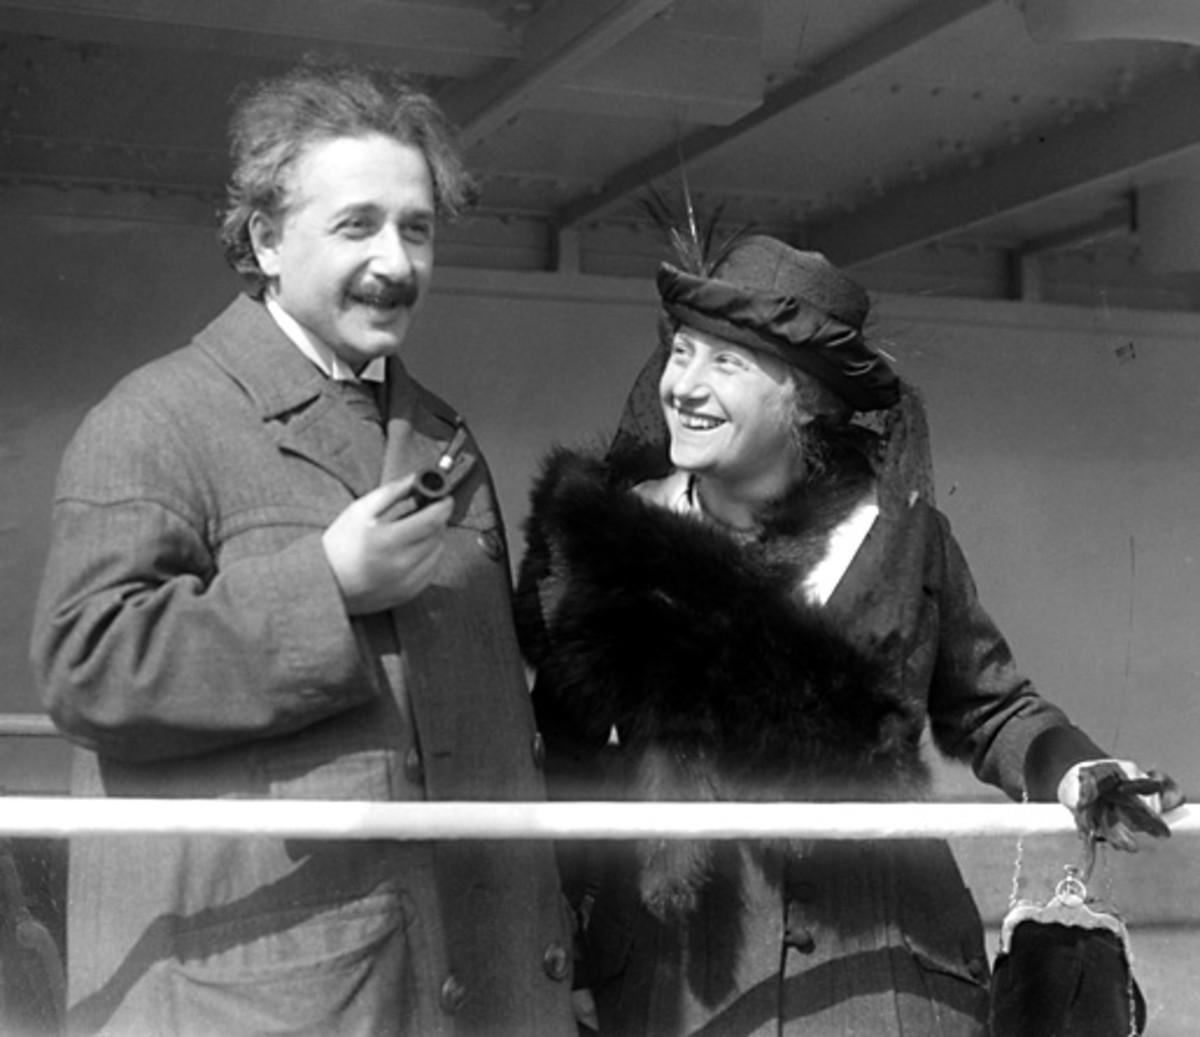 Albert Einstein and his wife Elsa